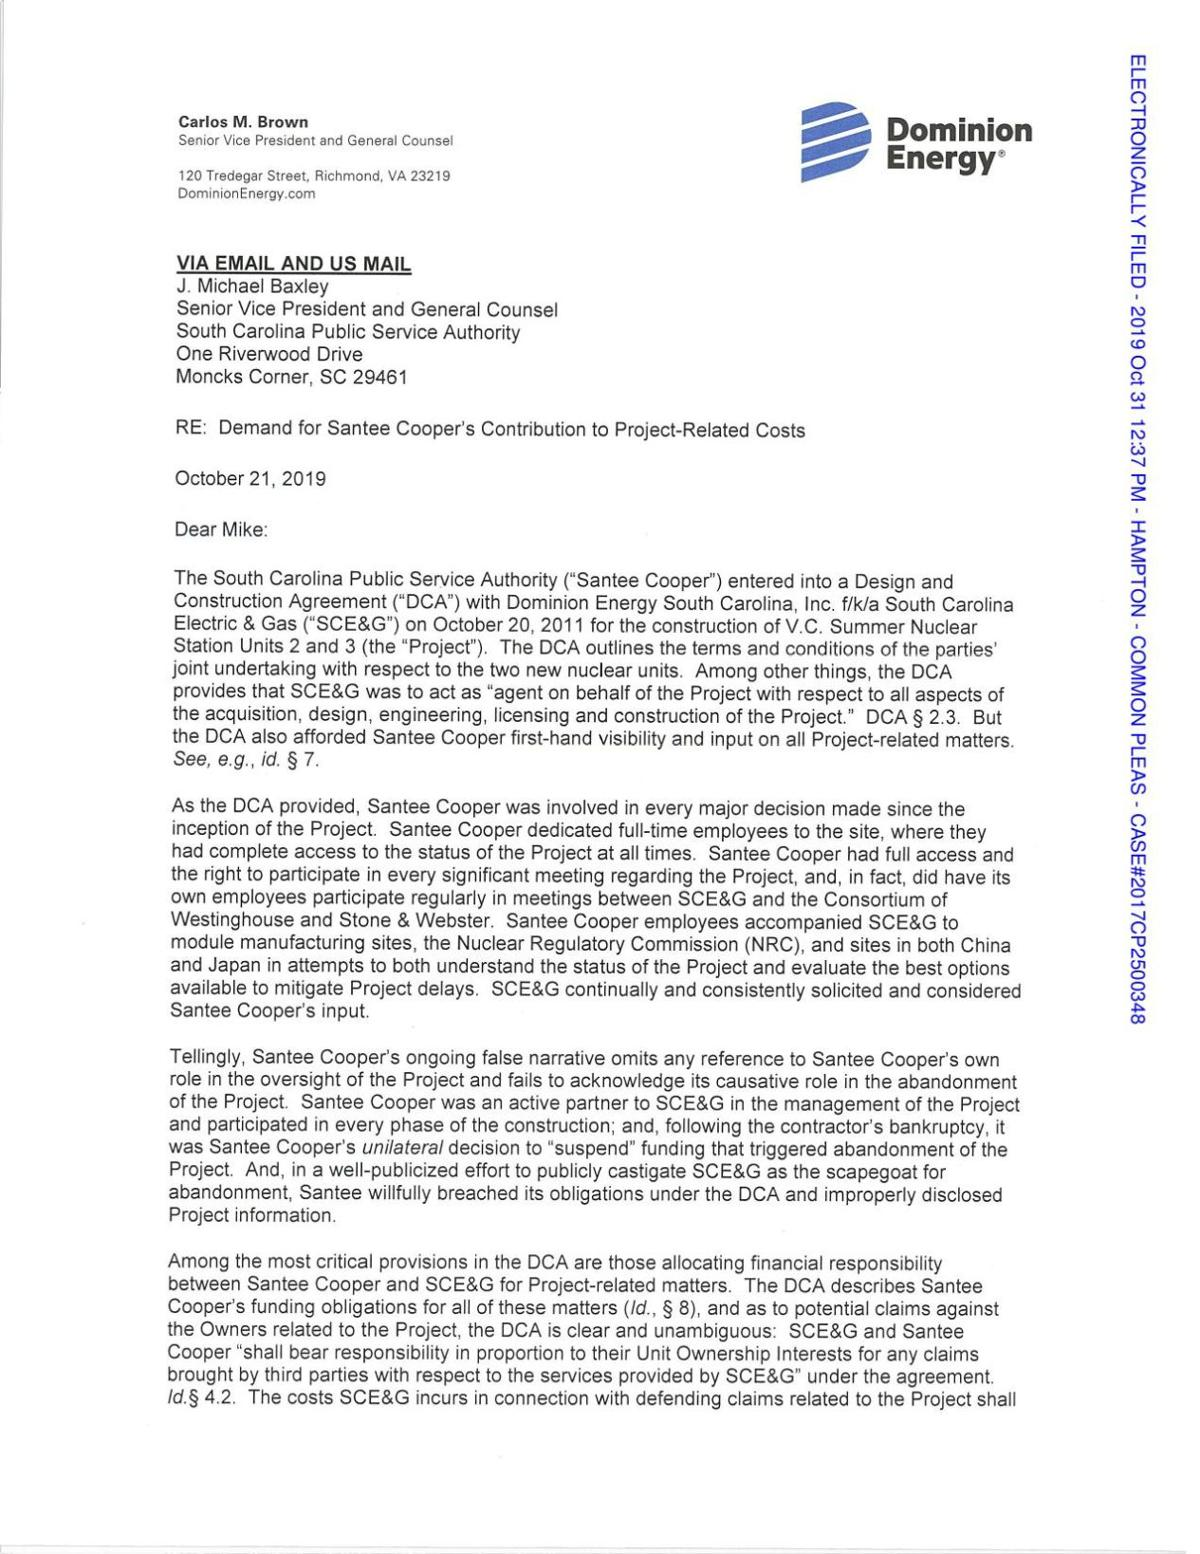 Dominion Energy letter to Santee Cooper